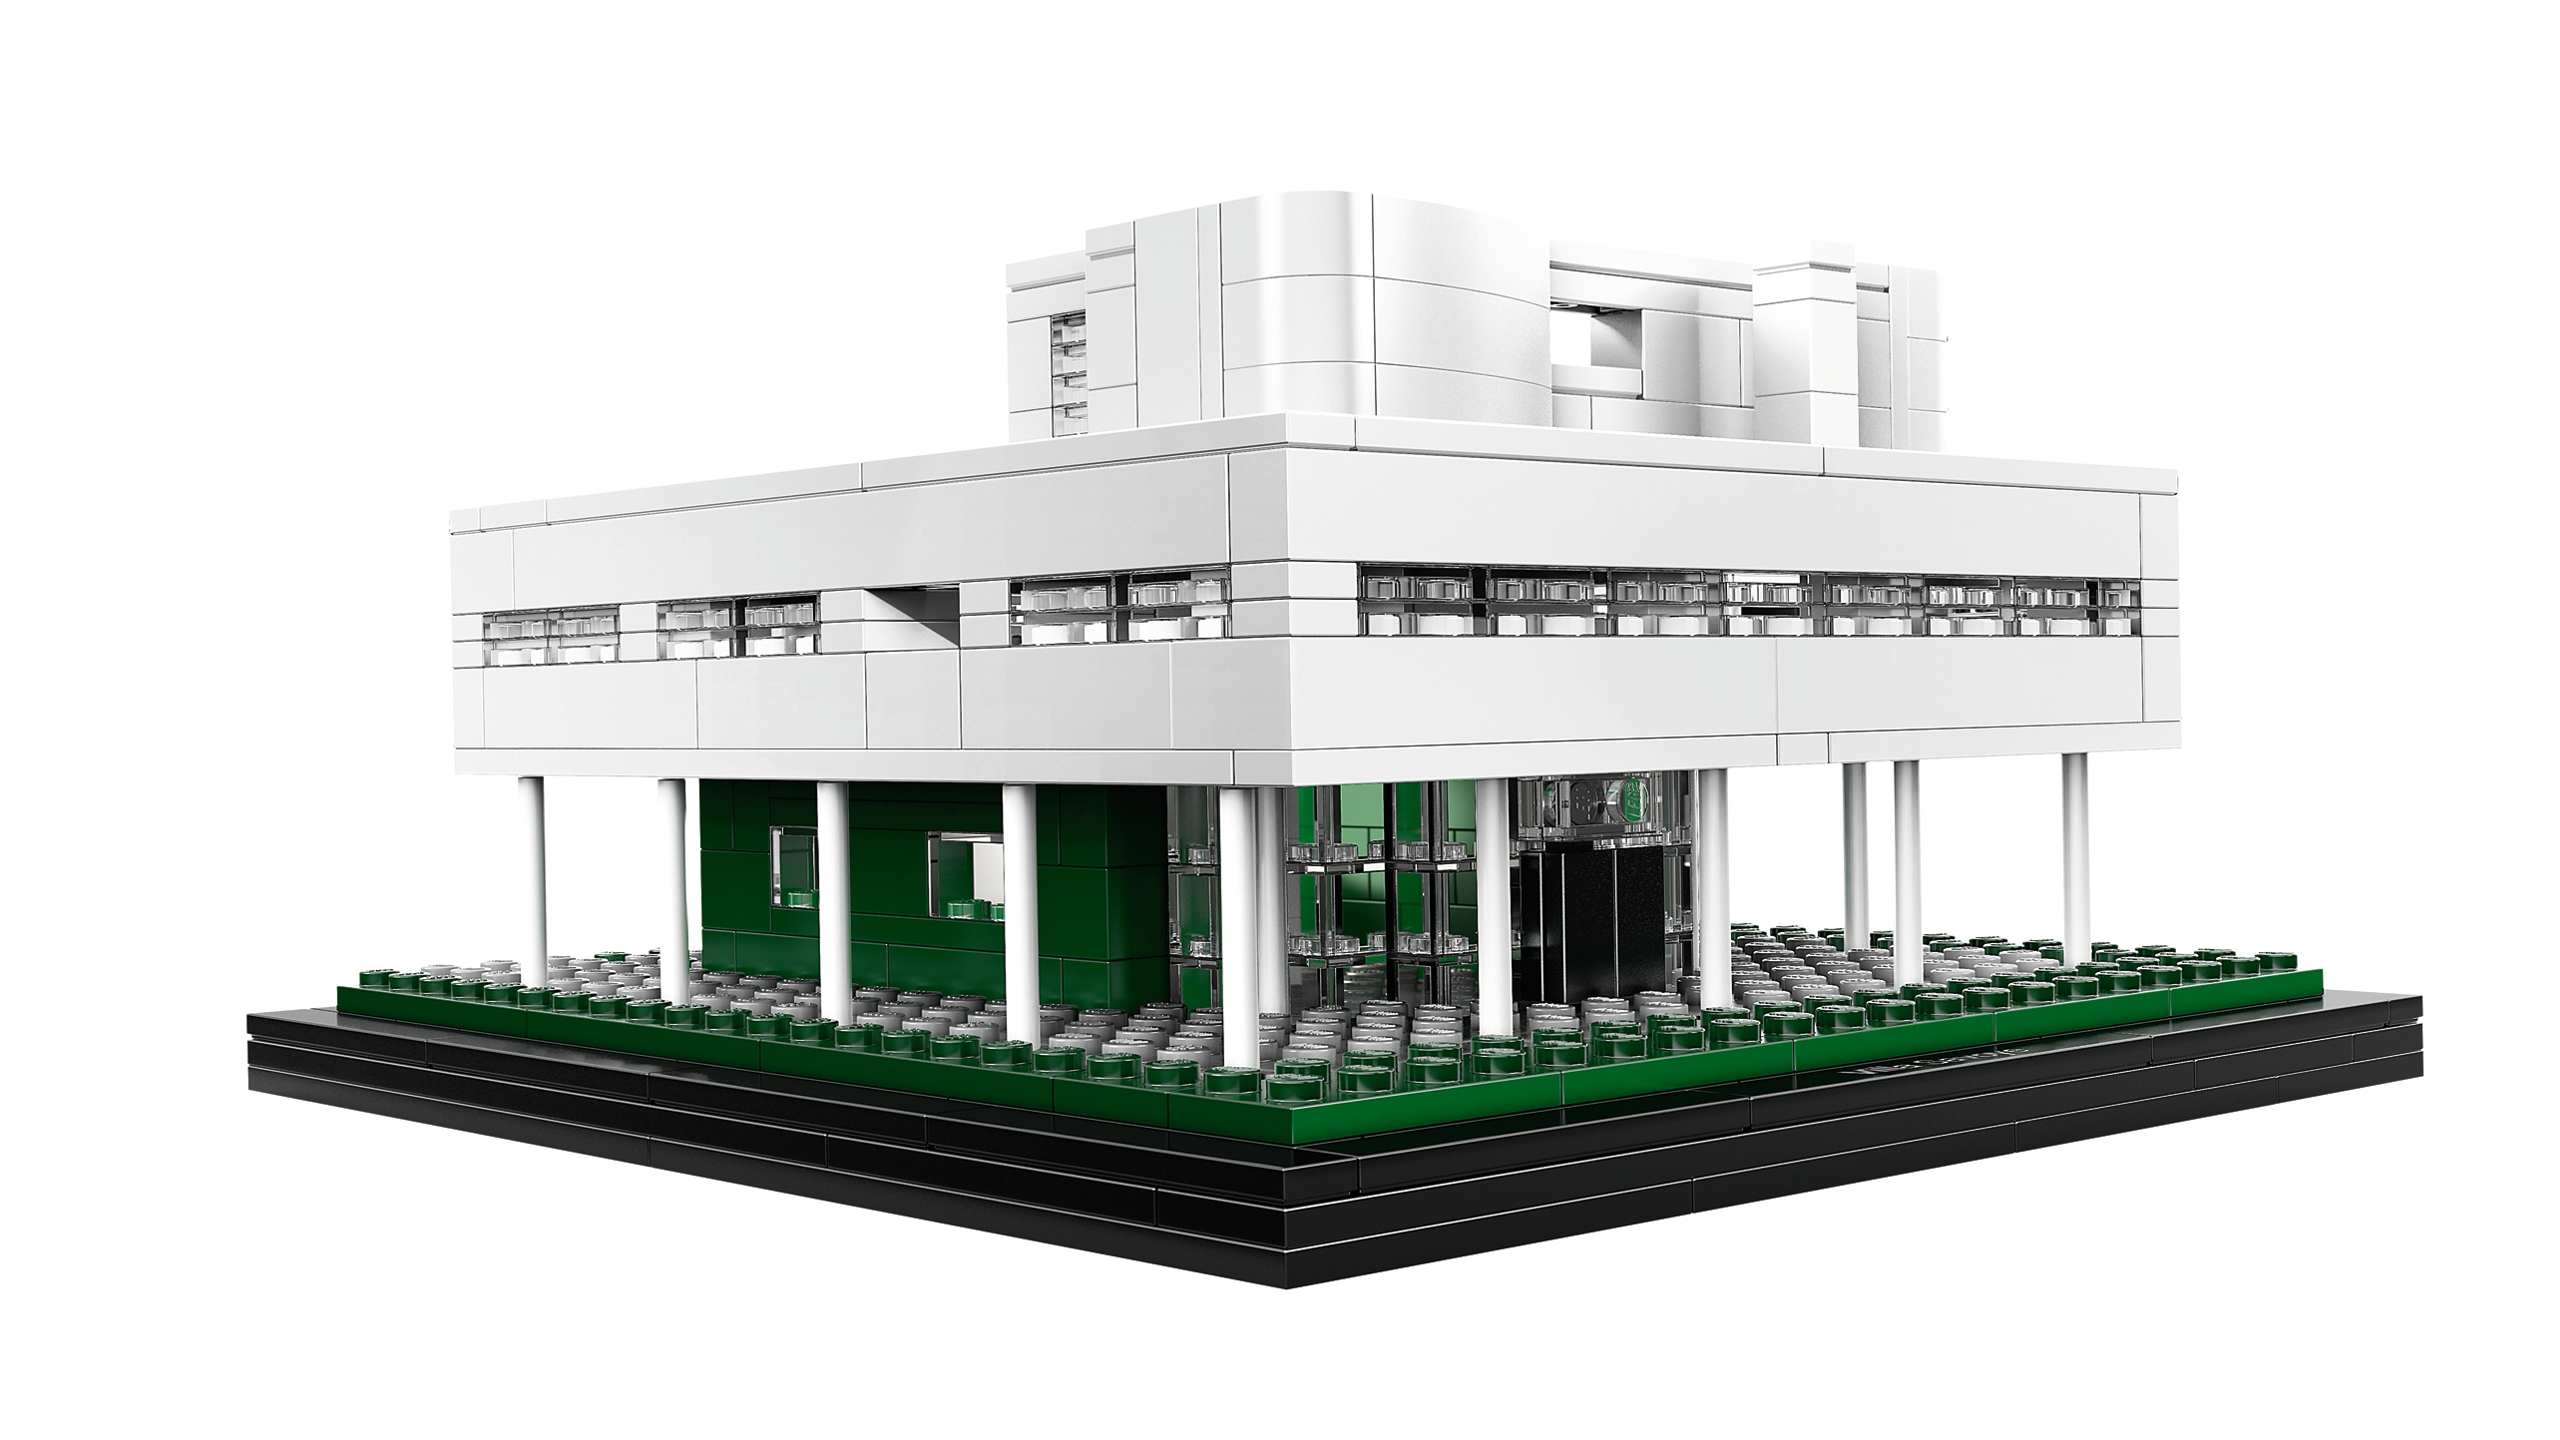 Villa Savoye by Le Corbusier architect - LEGO